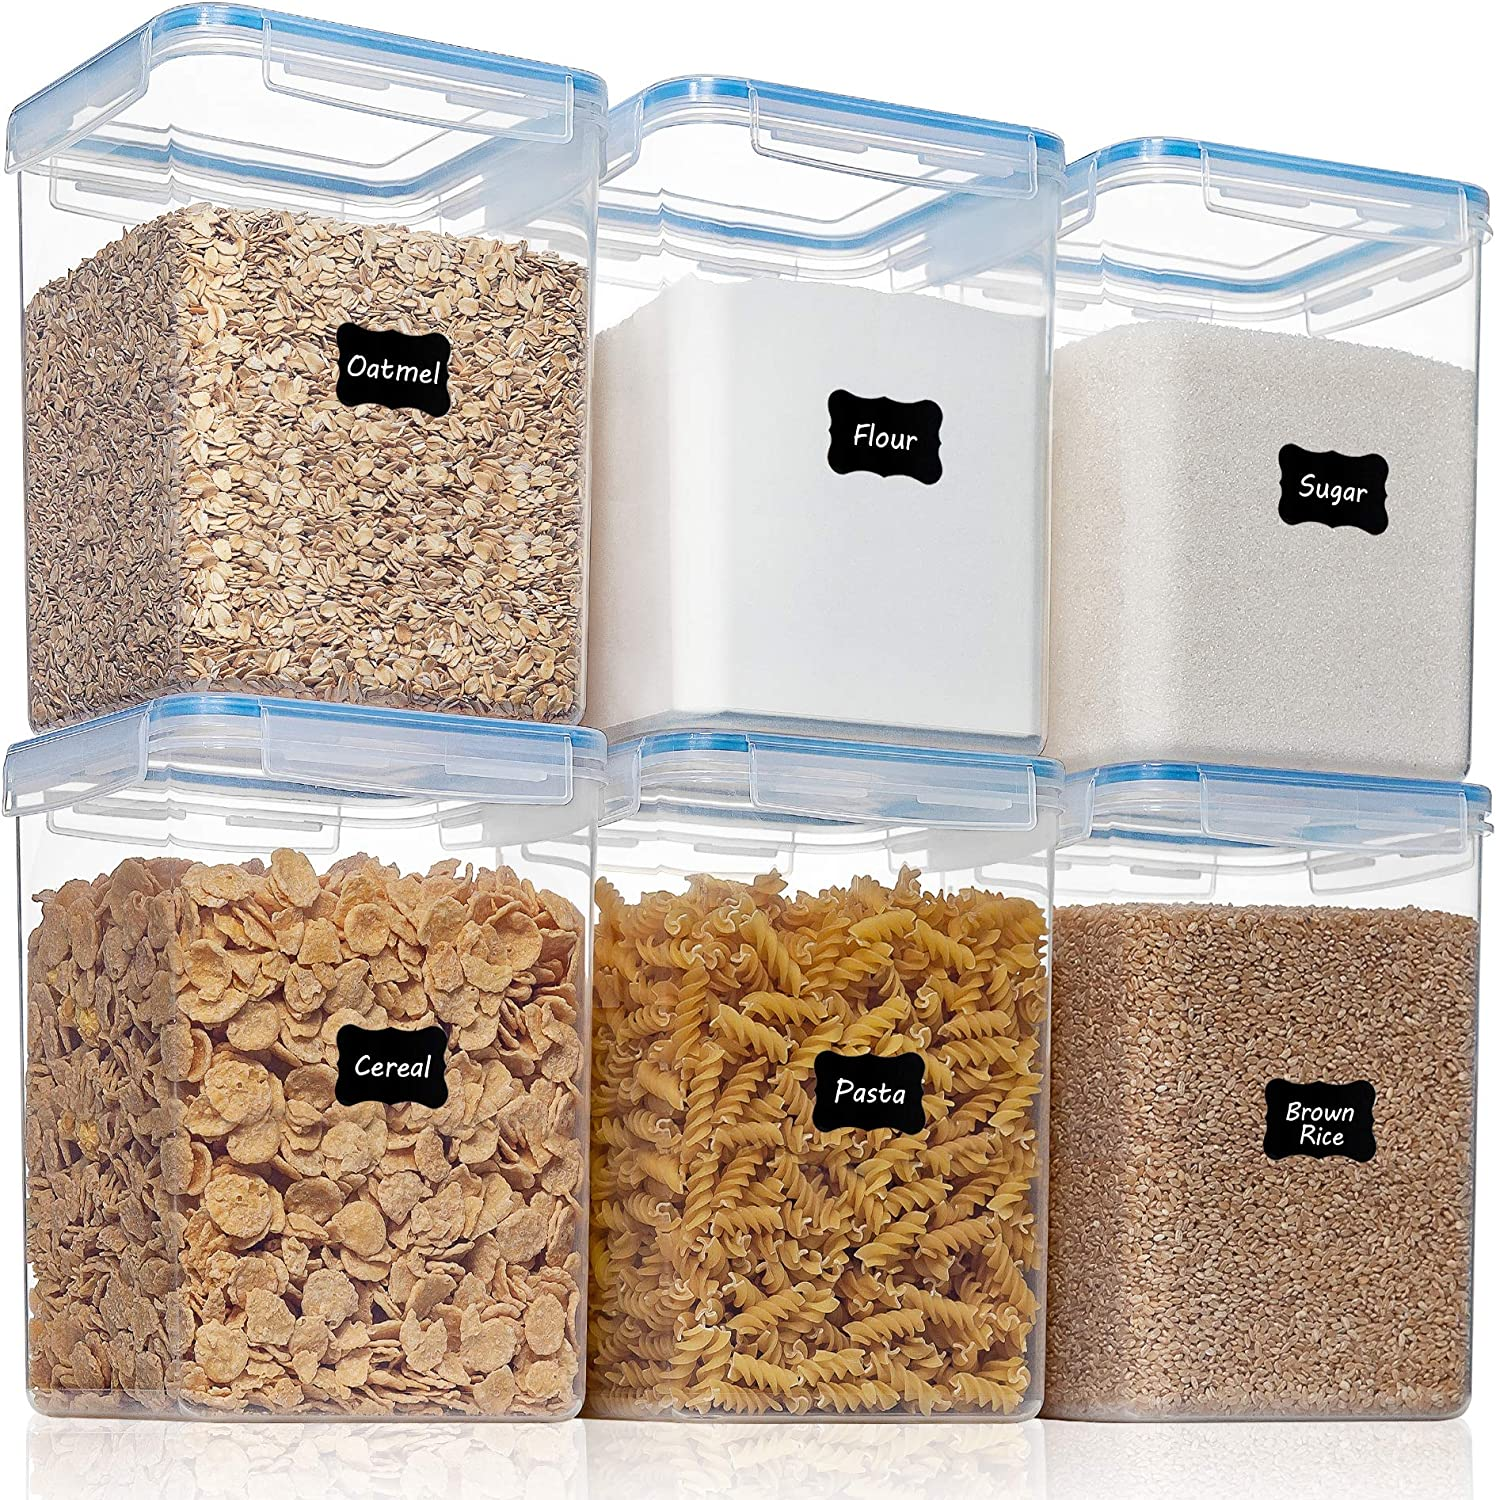 Large Airtight Food Storage Containers with Lids -HOOJO 6 Pcs (176oz/5.2L) Flour and Sugar Containers,BPA Free Plastic, Kitchen Pantry Organizers with Measuring Cups and Removable Labels,Blue